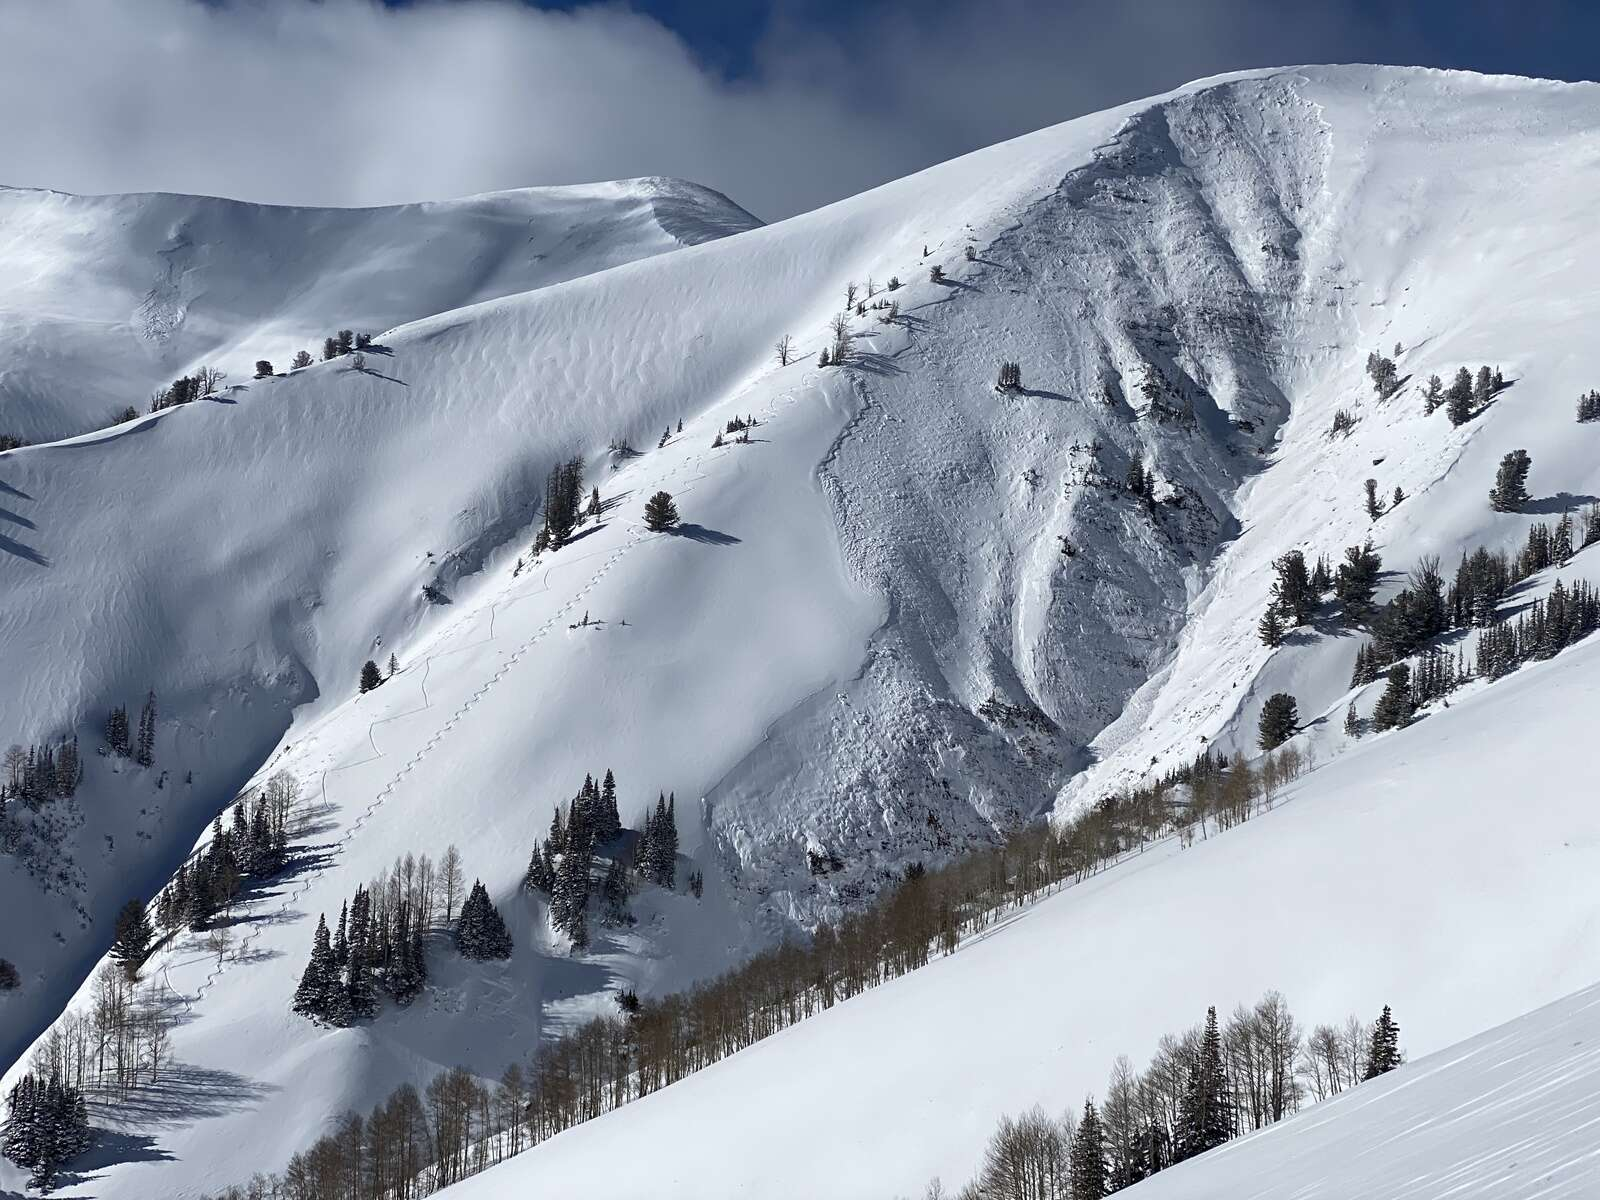 'Deadly avalanches are likely' in the coming days, experts warn